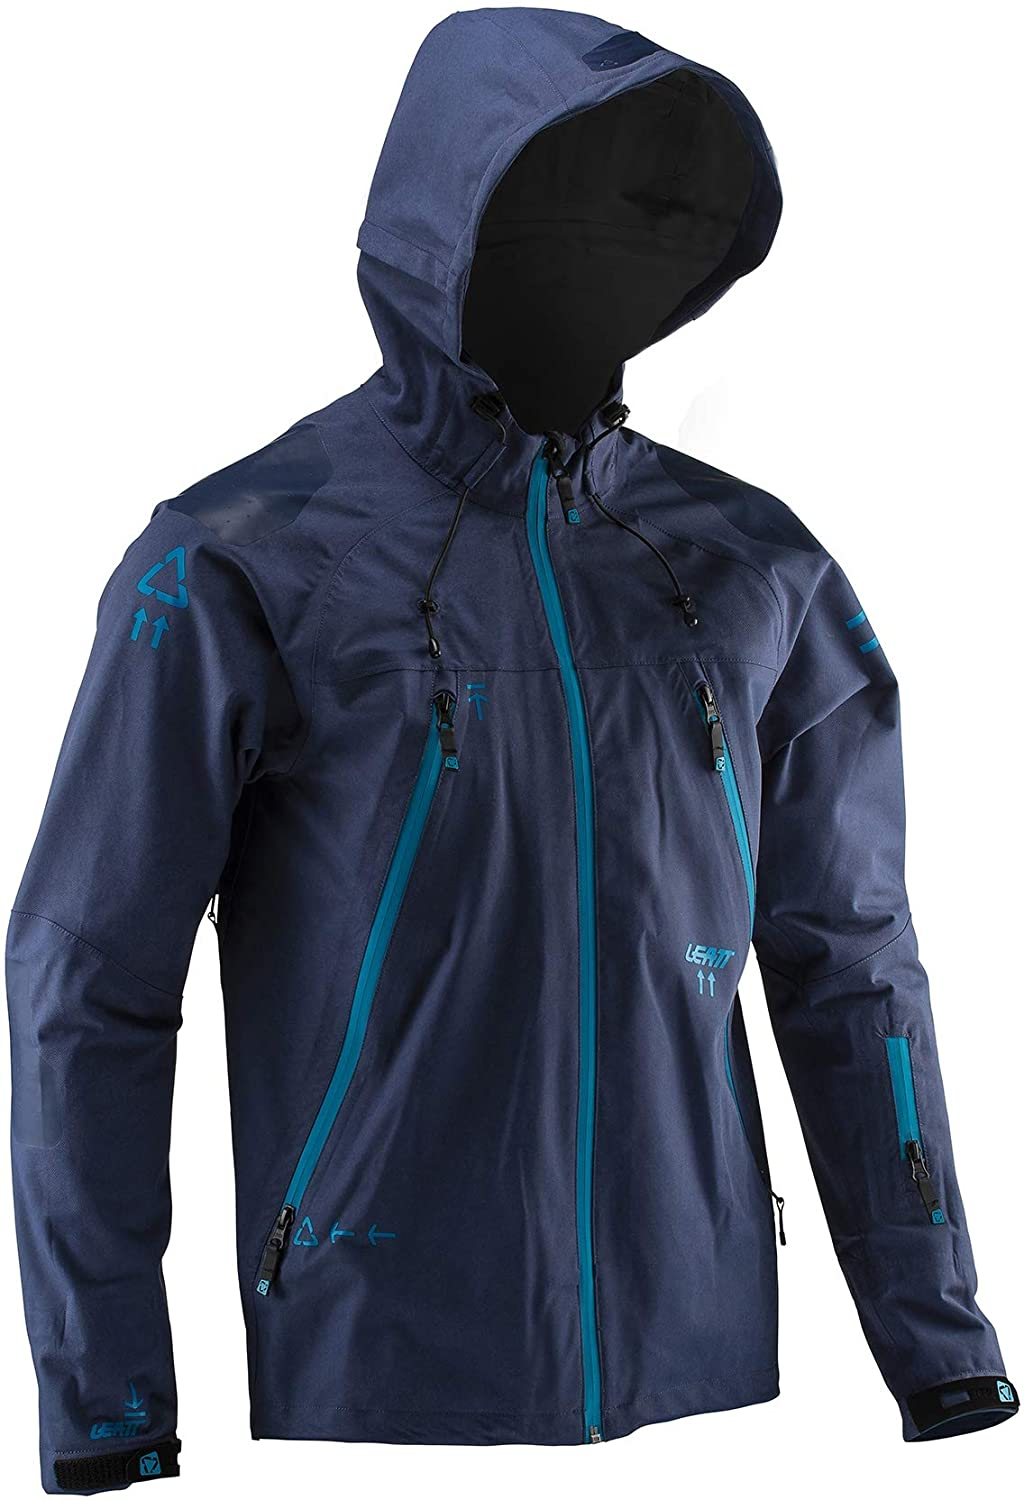 Leatt DBX 5.0 All-Mountain Bicycle Riding Jacket-Ink-M 5019001192